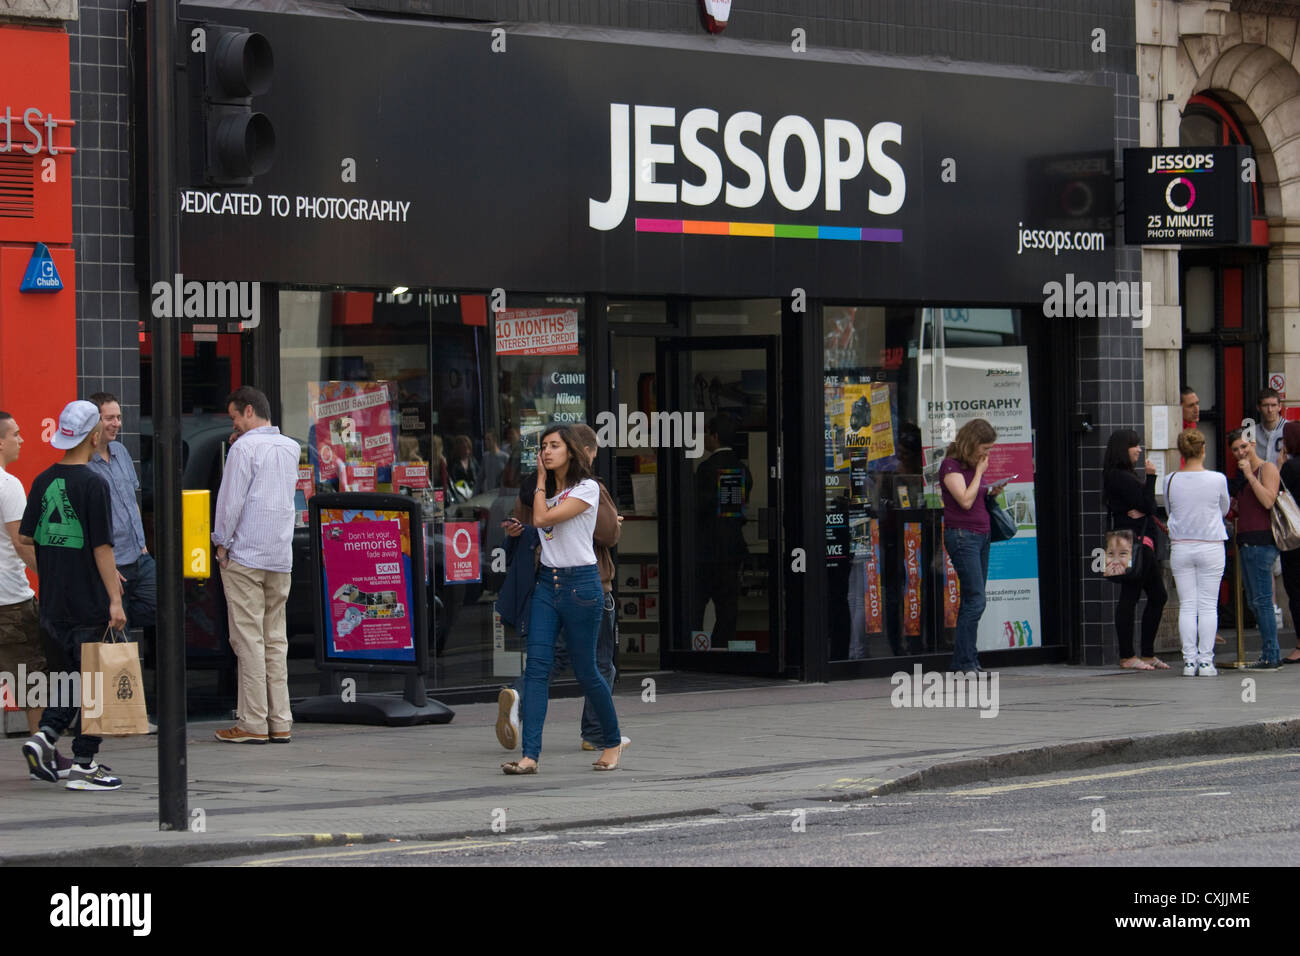 oxford Street jessops photographic retailer shop store - Stock Image